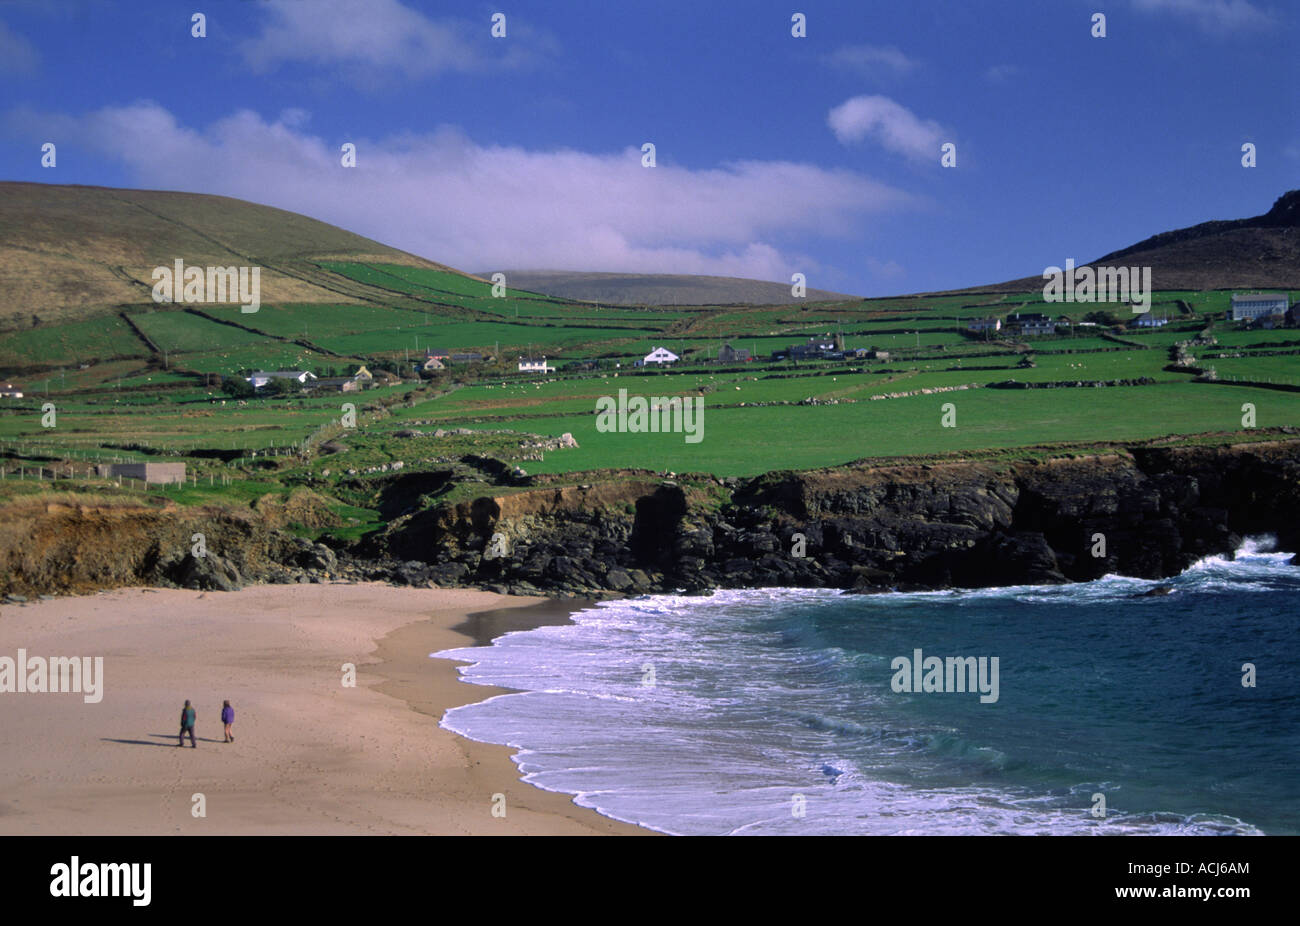 Les gens qui marchent sur la plage de Clogher, sous le patchwork des champs verts. Péninsule de Dingle, comté Photo Stock